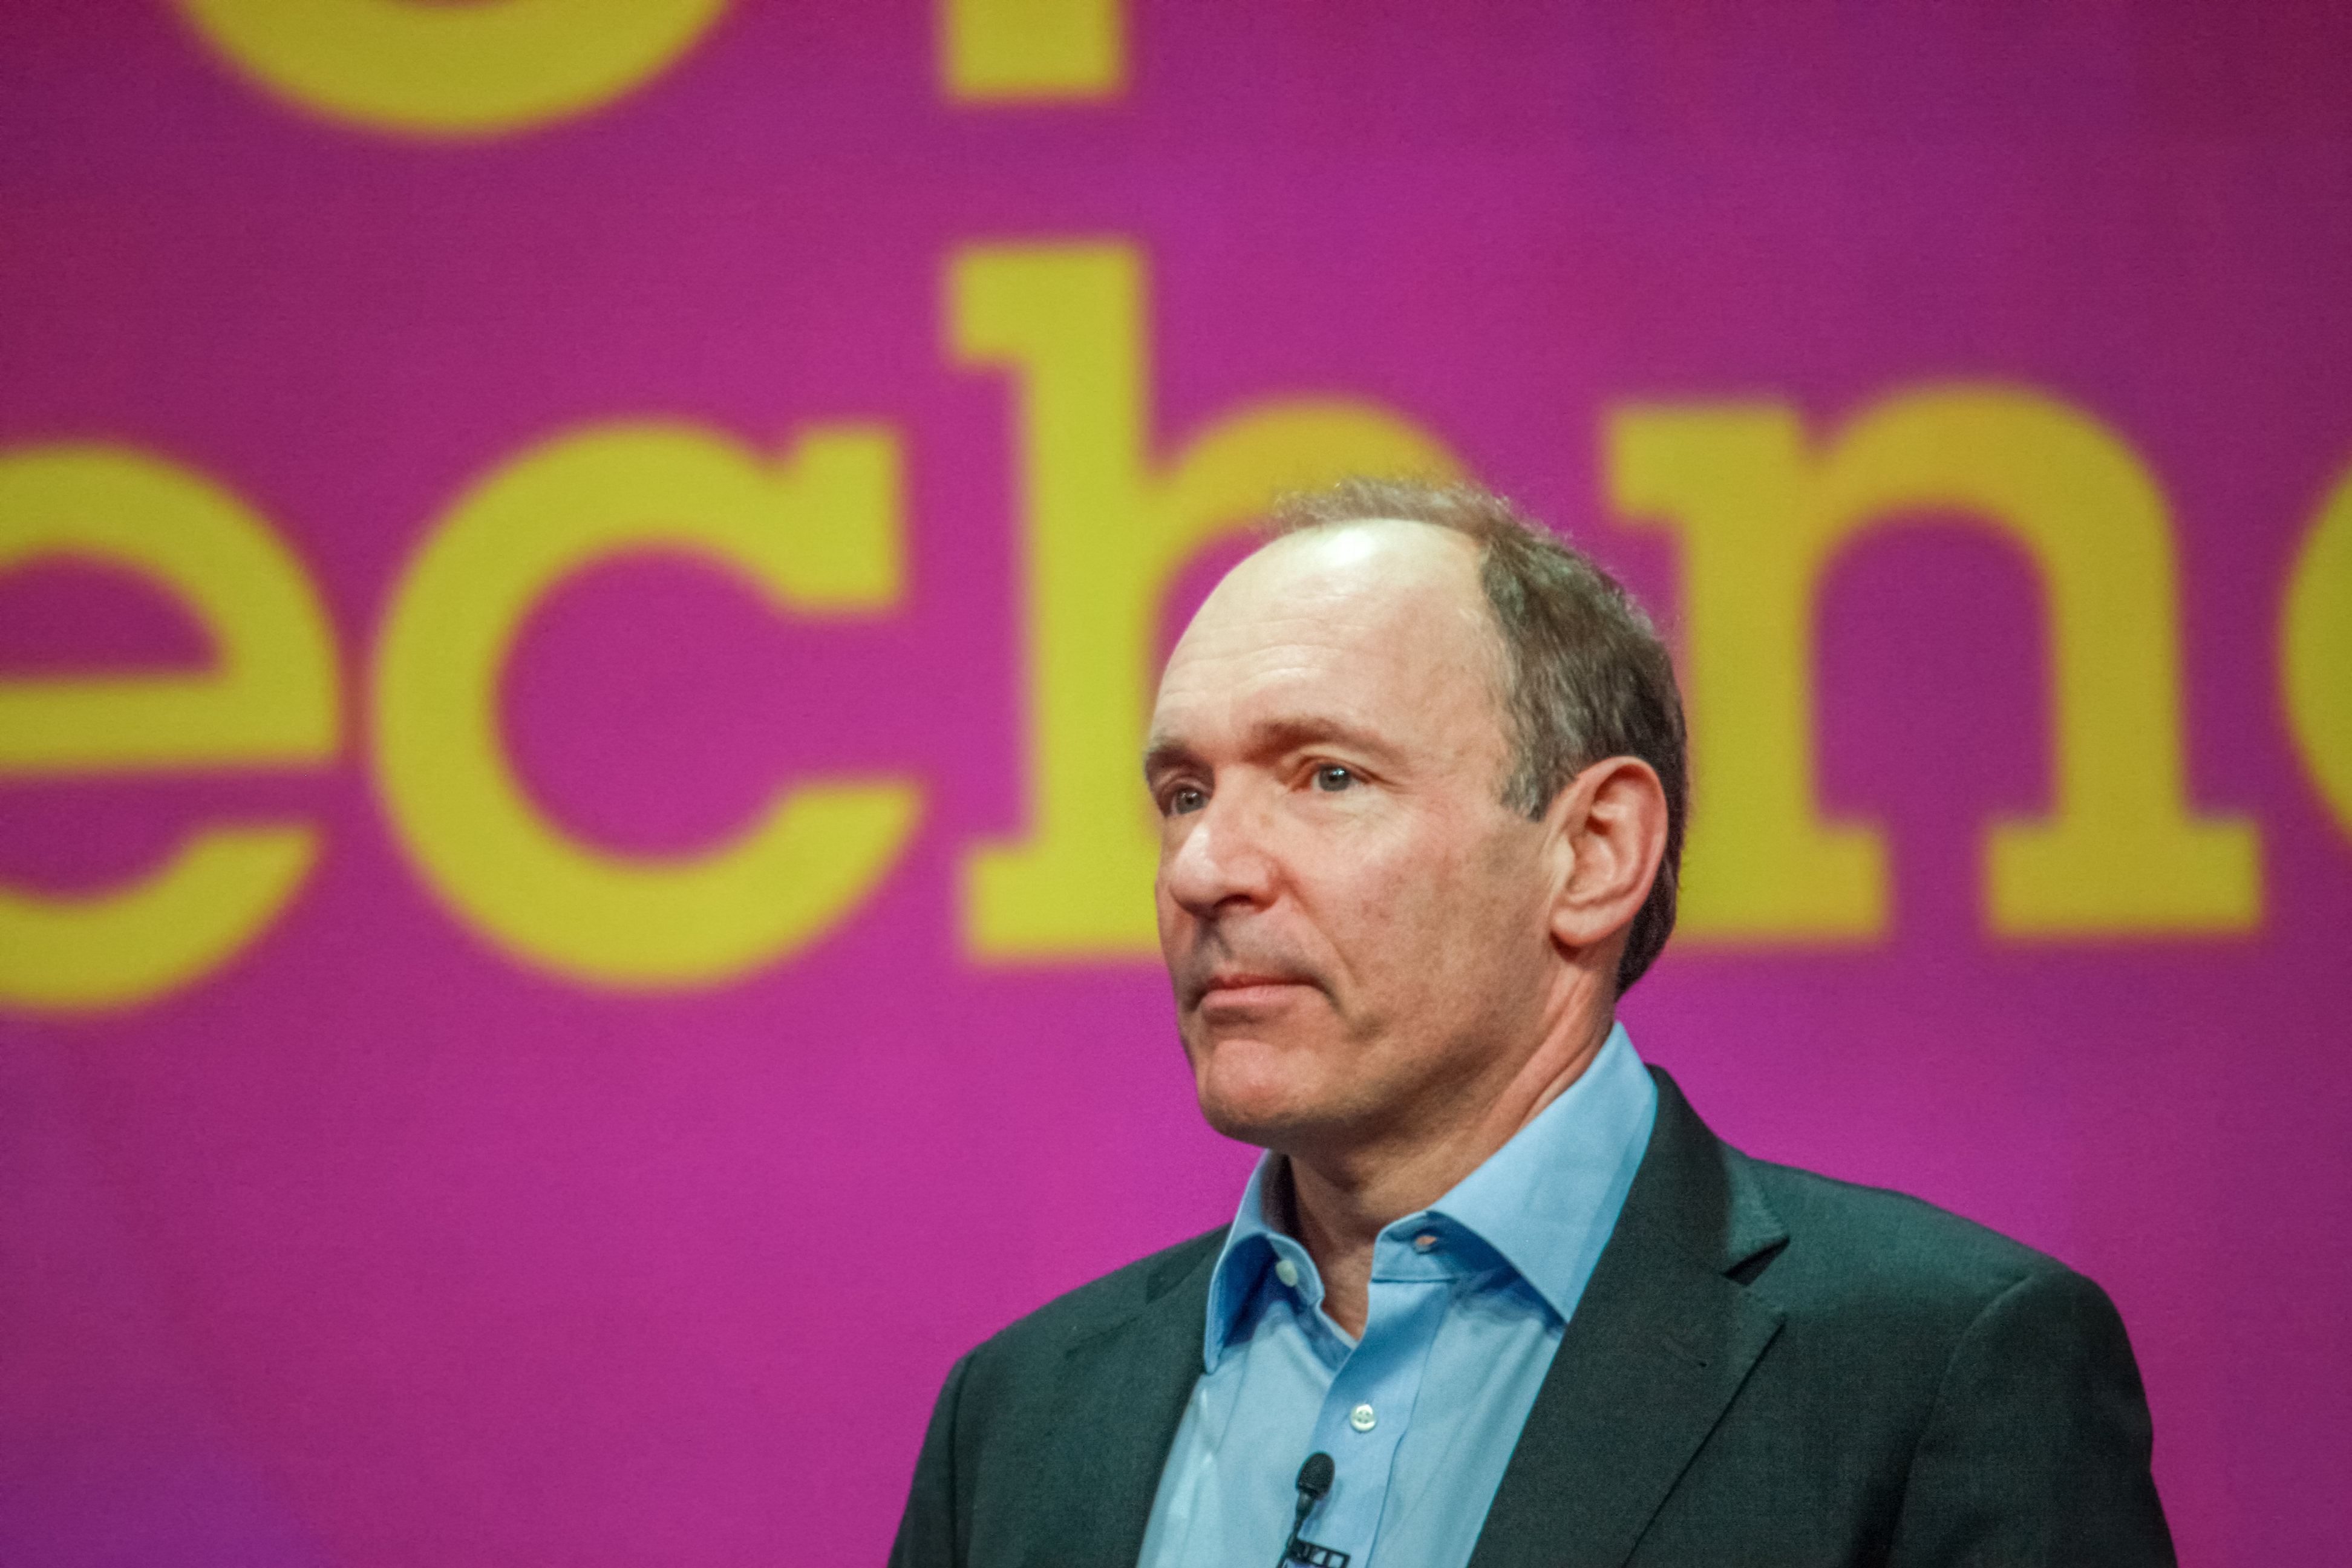 World Wide Web turns 31 / IFS publishes Budget analysis / Oracle posts Q3 results